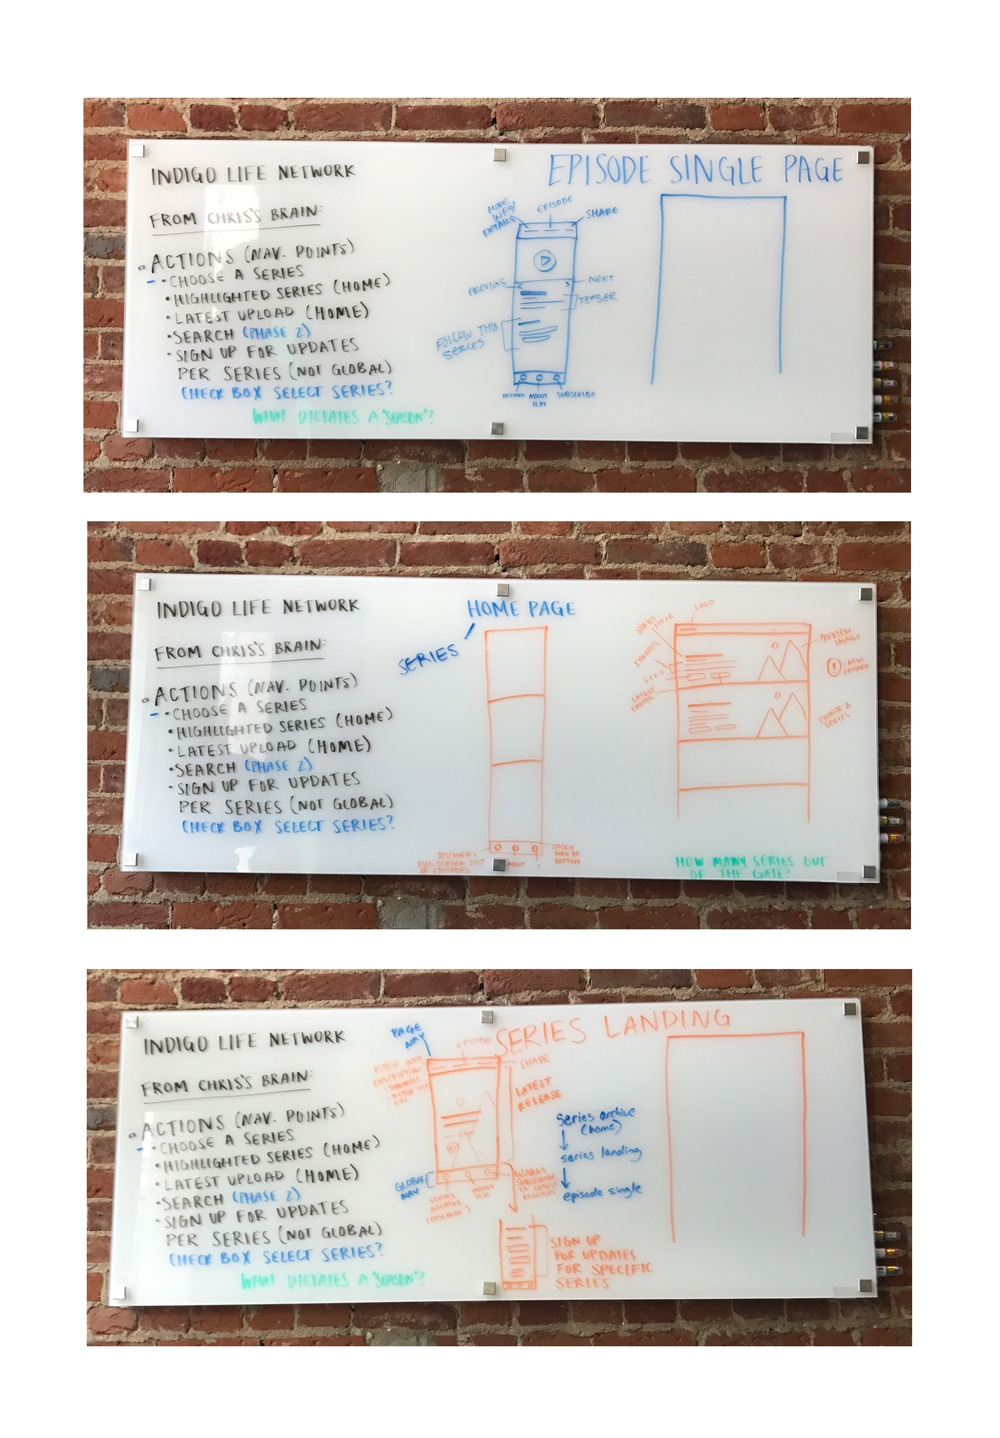 A photo of wireframe sketches on a whiteboard